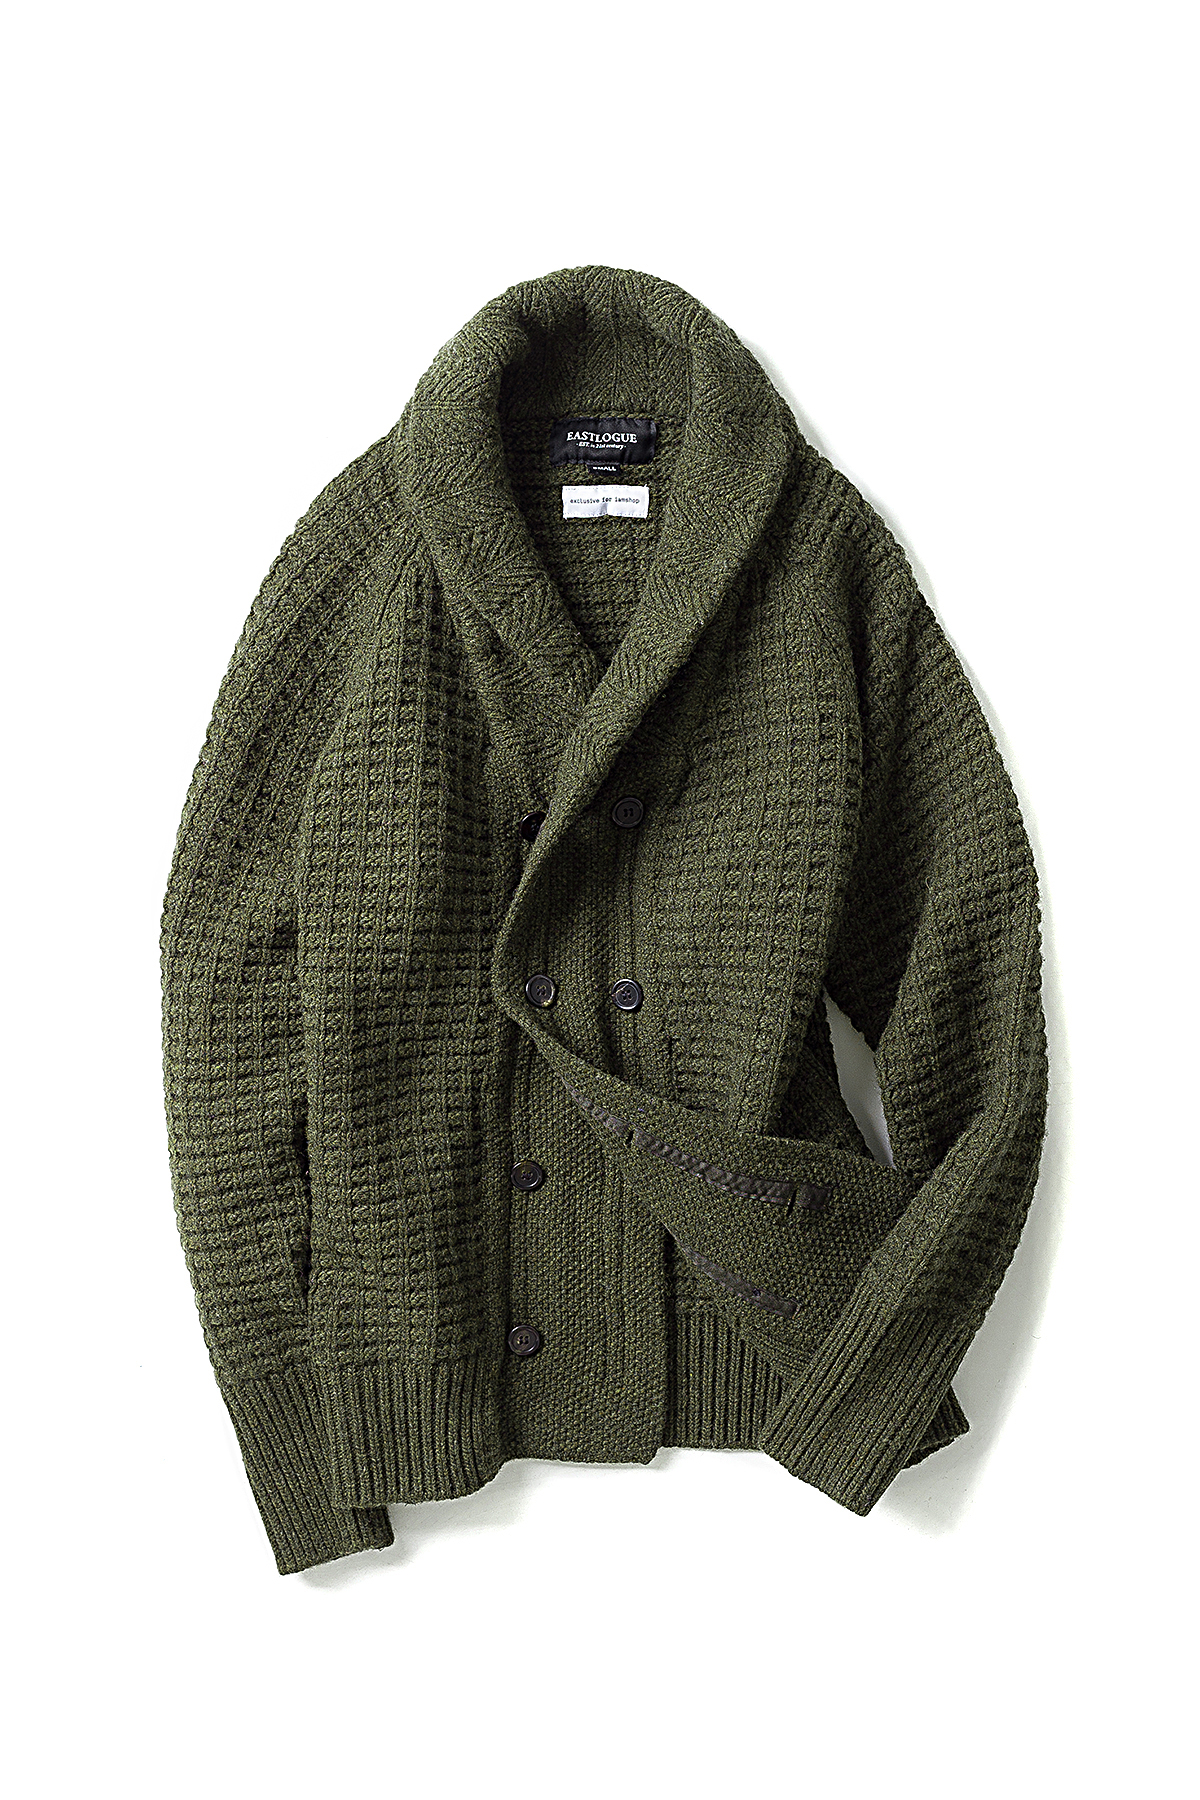 I AM SHOP X EL : Aran Jumper (Olive)